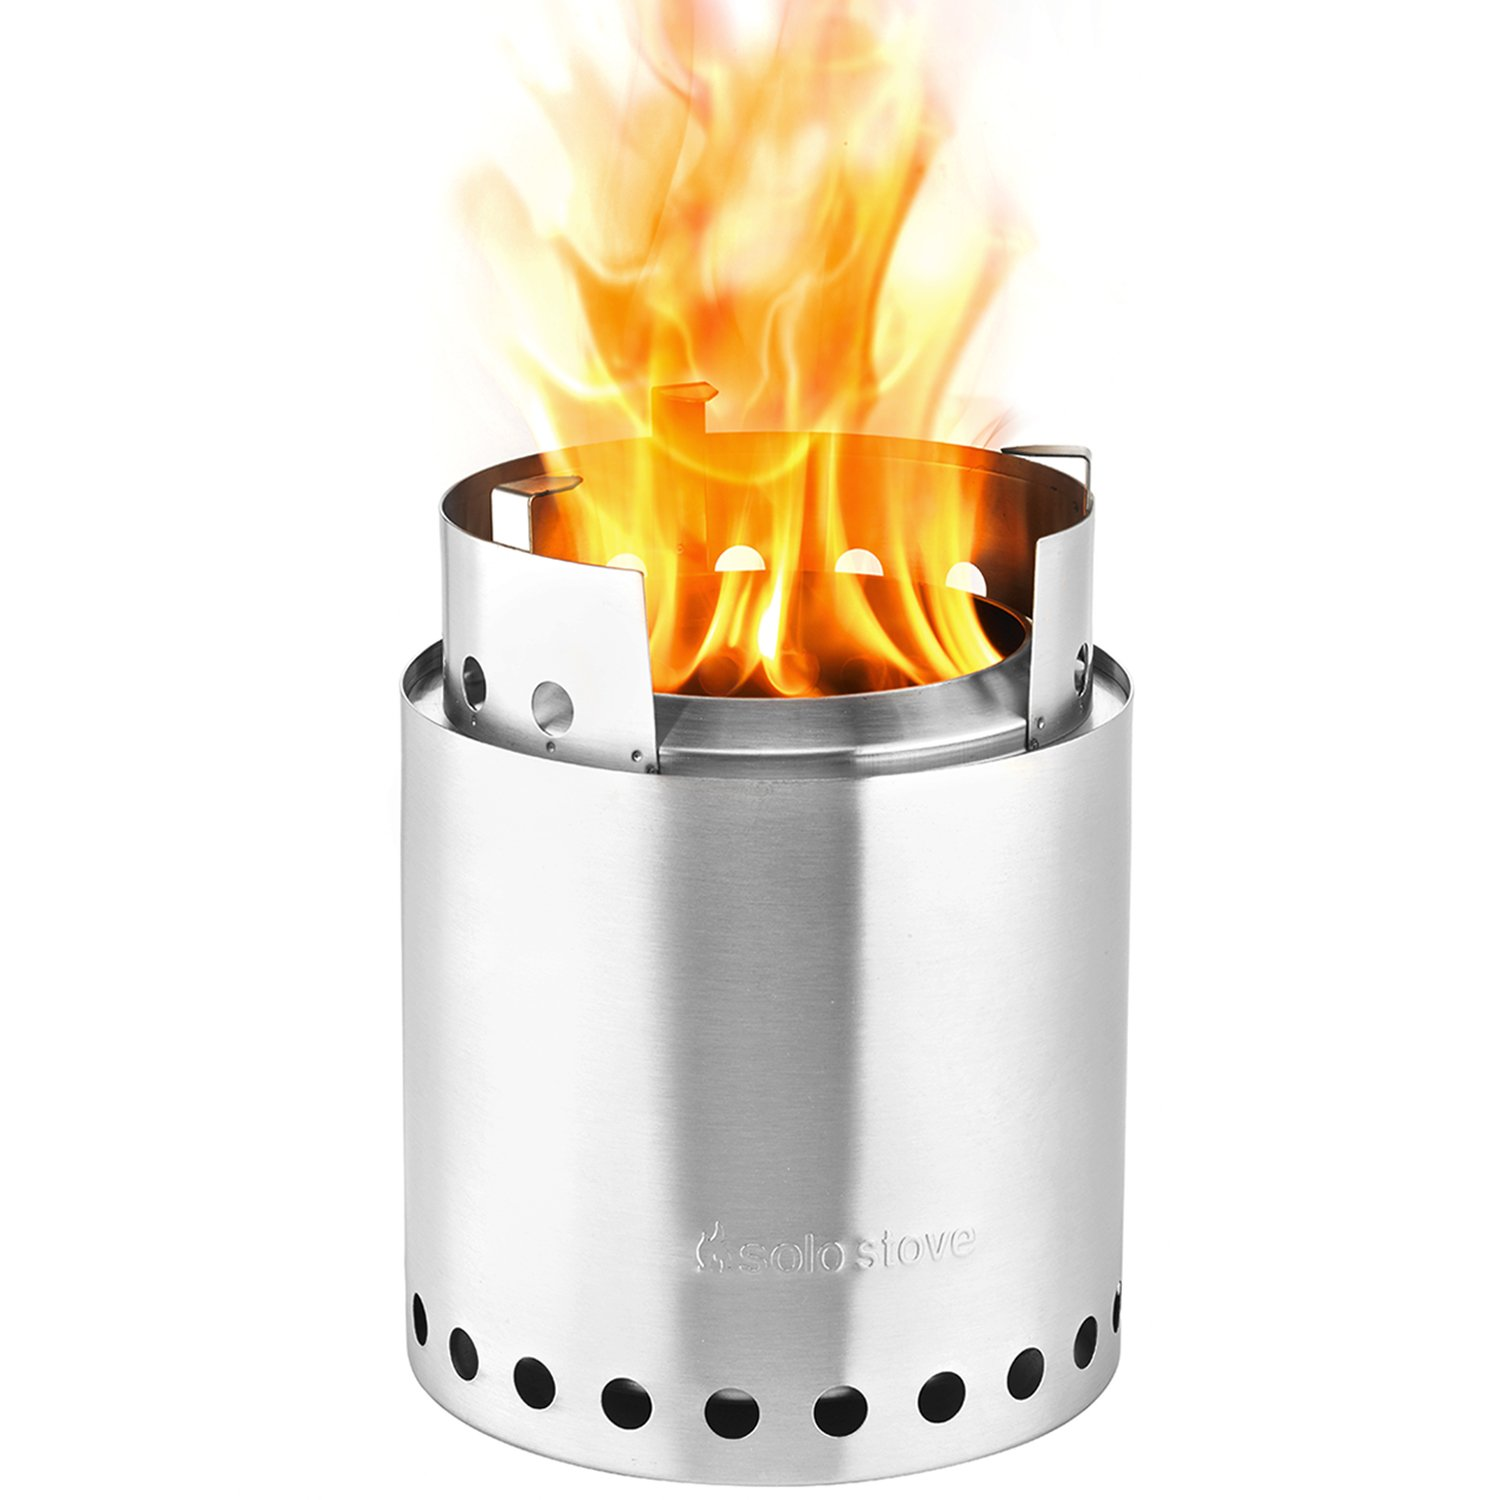 Solo Stove Campfire - 4+ Person Compact Wood Burning Camp Stove for Backpacking, Camping, Survival. Burns Twigs - NO Batteries or Liquid Fuel Gas Canister Required. by Solo Stove